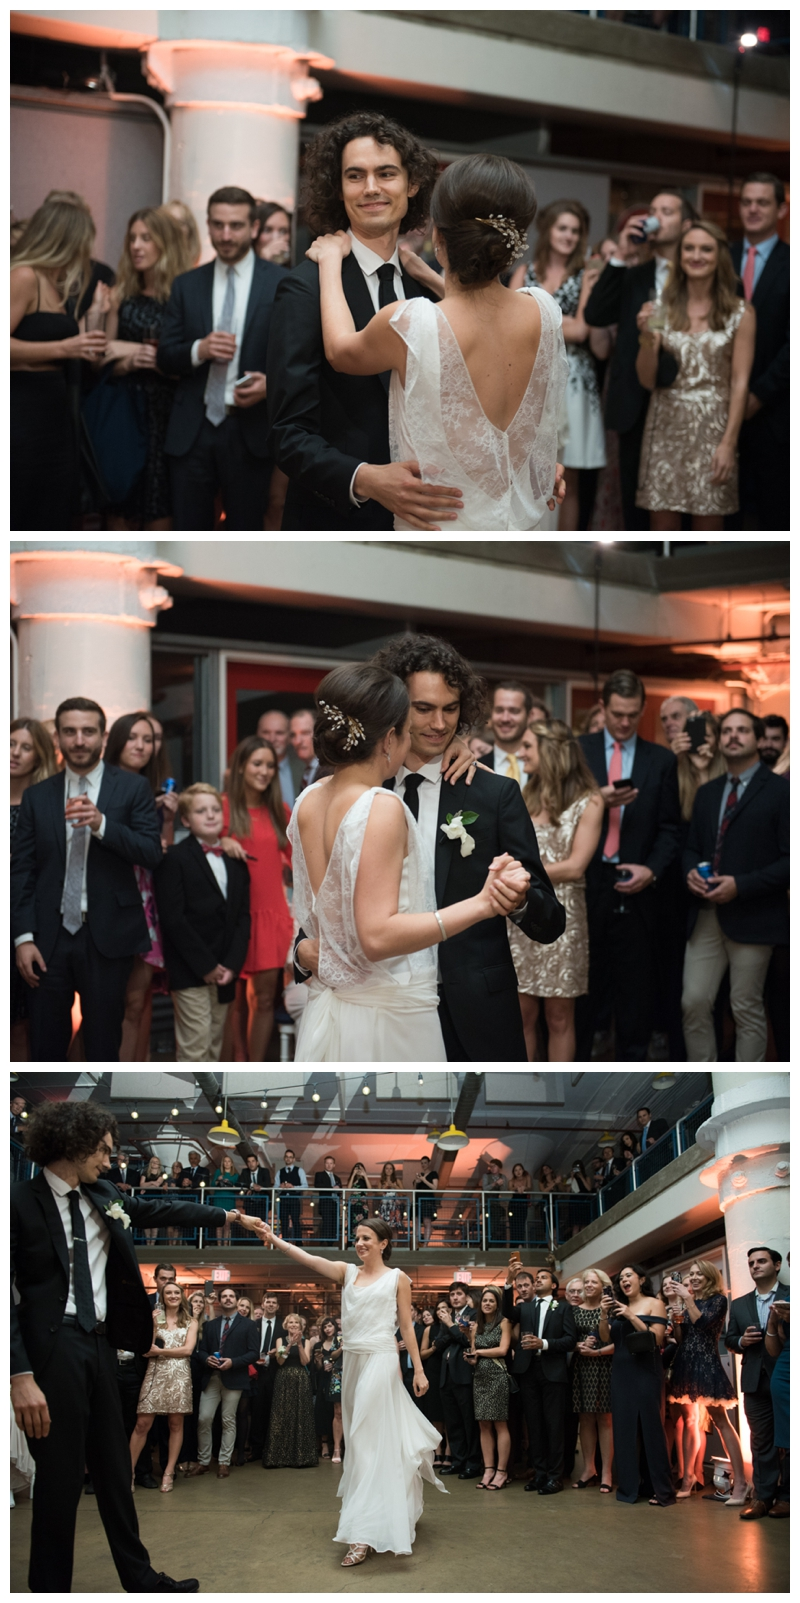 Wedding in Old Town Alexandria Virginia at the Torpedo Factory Art Center by Rachael Foster Photography_0084.jpg